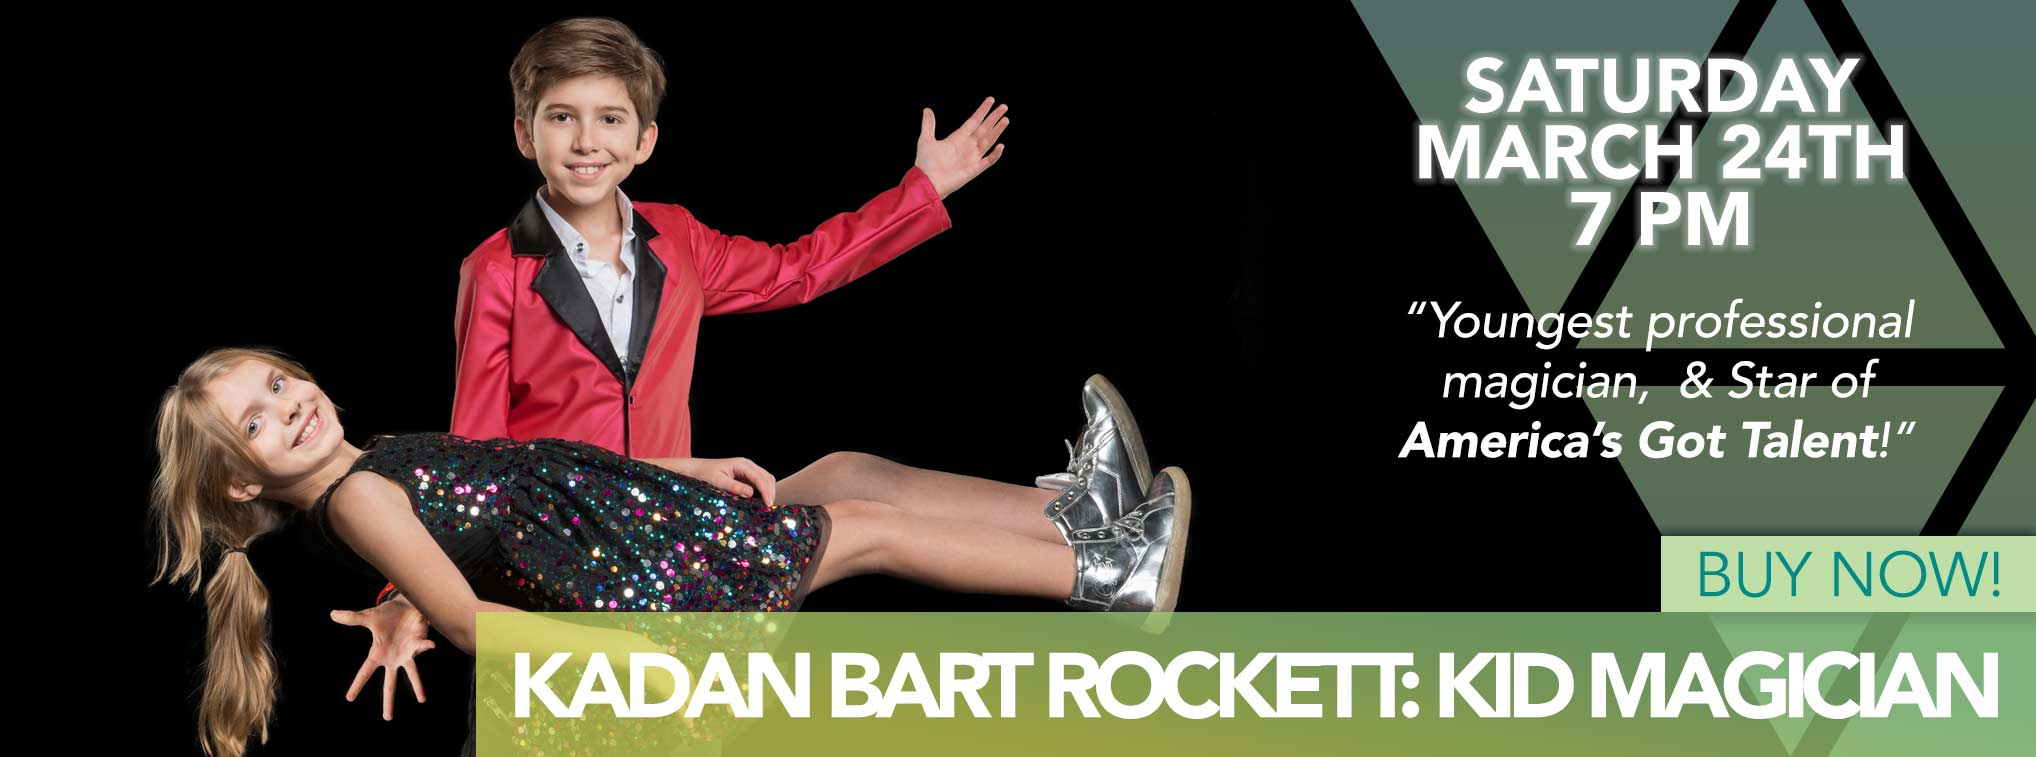 Kadan Bart Rocket Kid Magician - Saturday March 24th 7PM